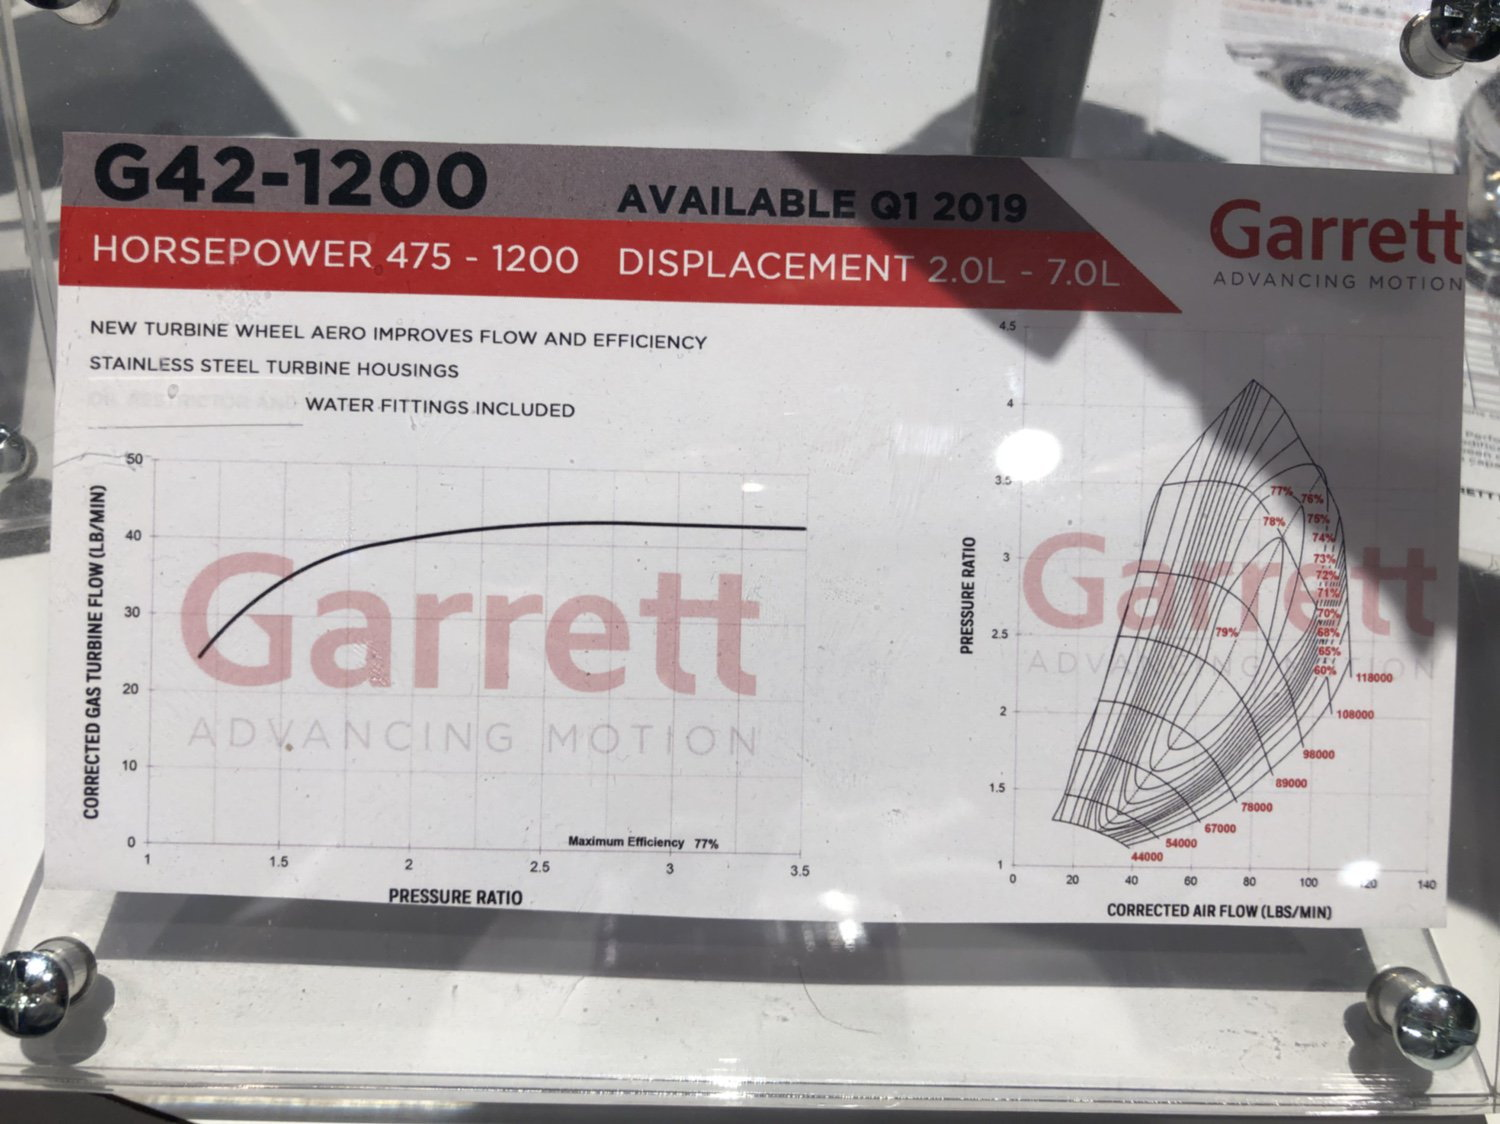 Garrett G Series Turbo - Competitor to the Borg-Warner EFR series or